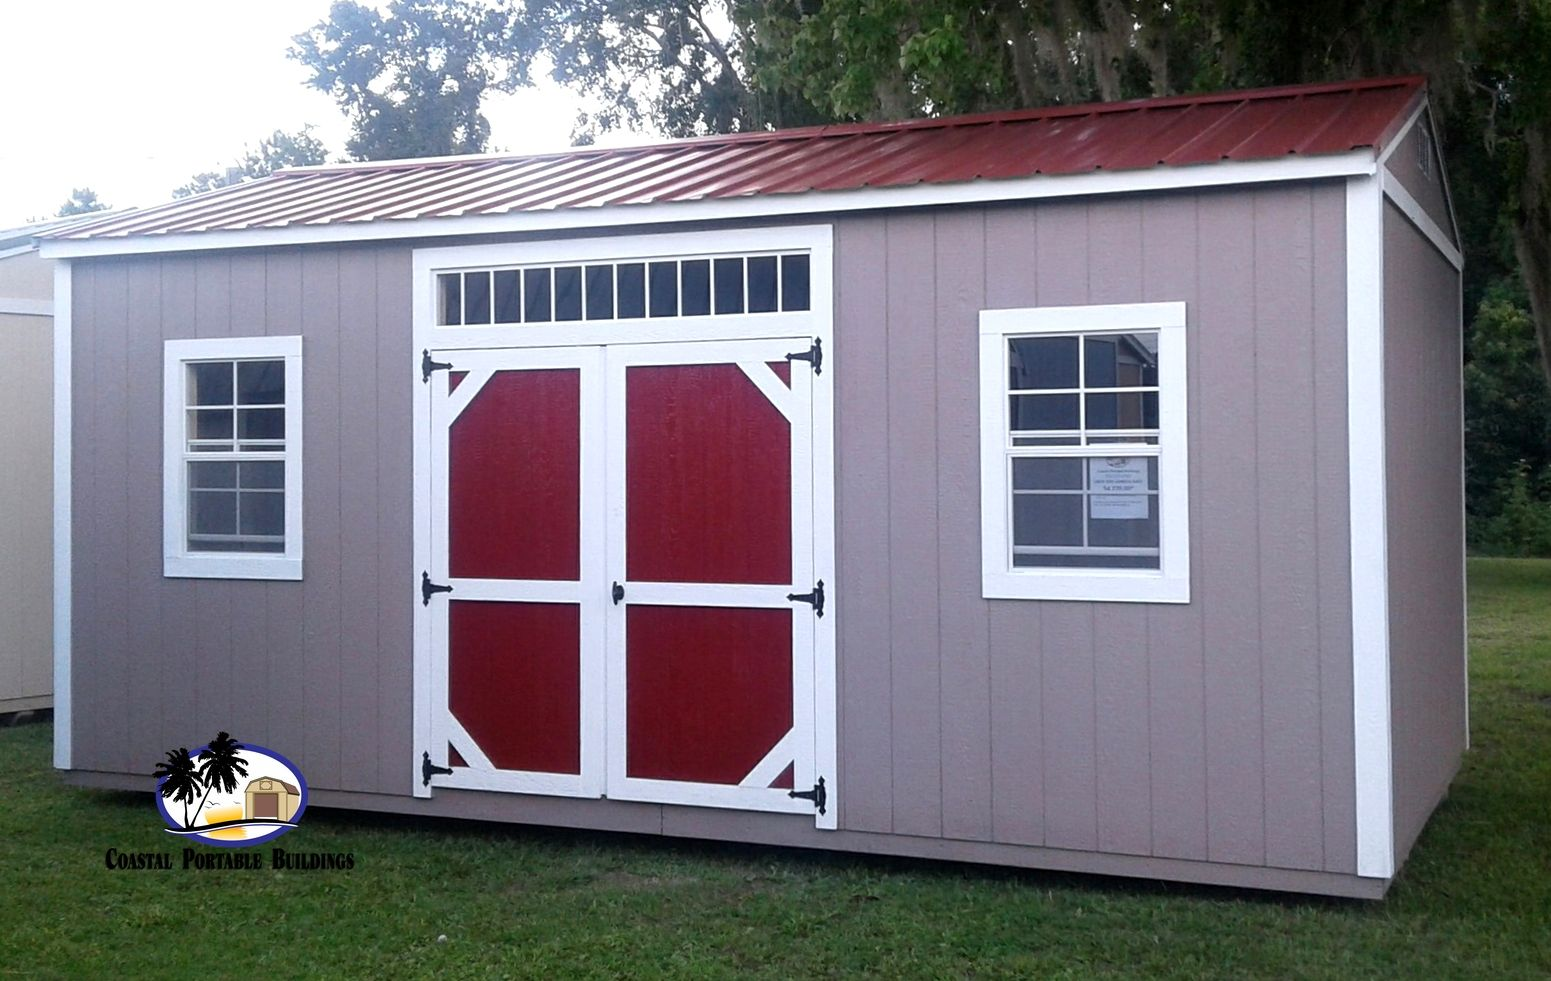 Side Garden Shed 10x20 Shown In Taupe With White Trim And Red Roof